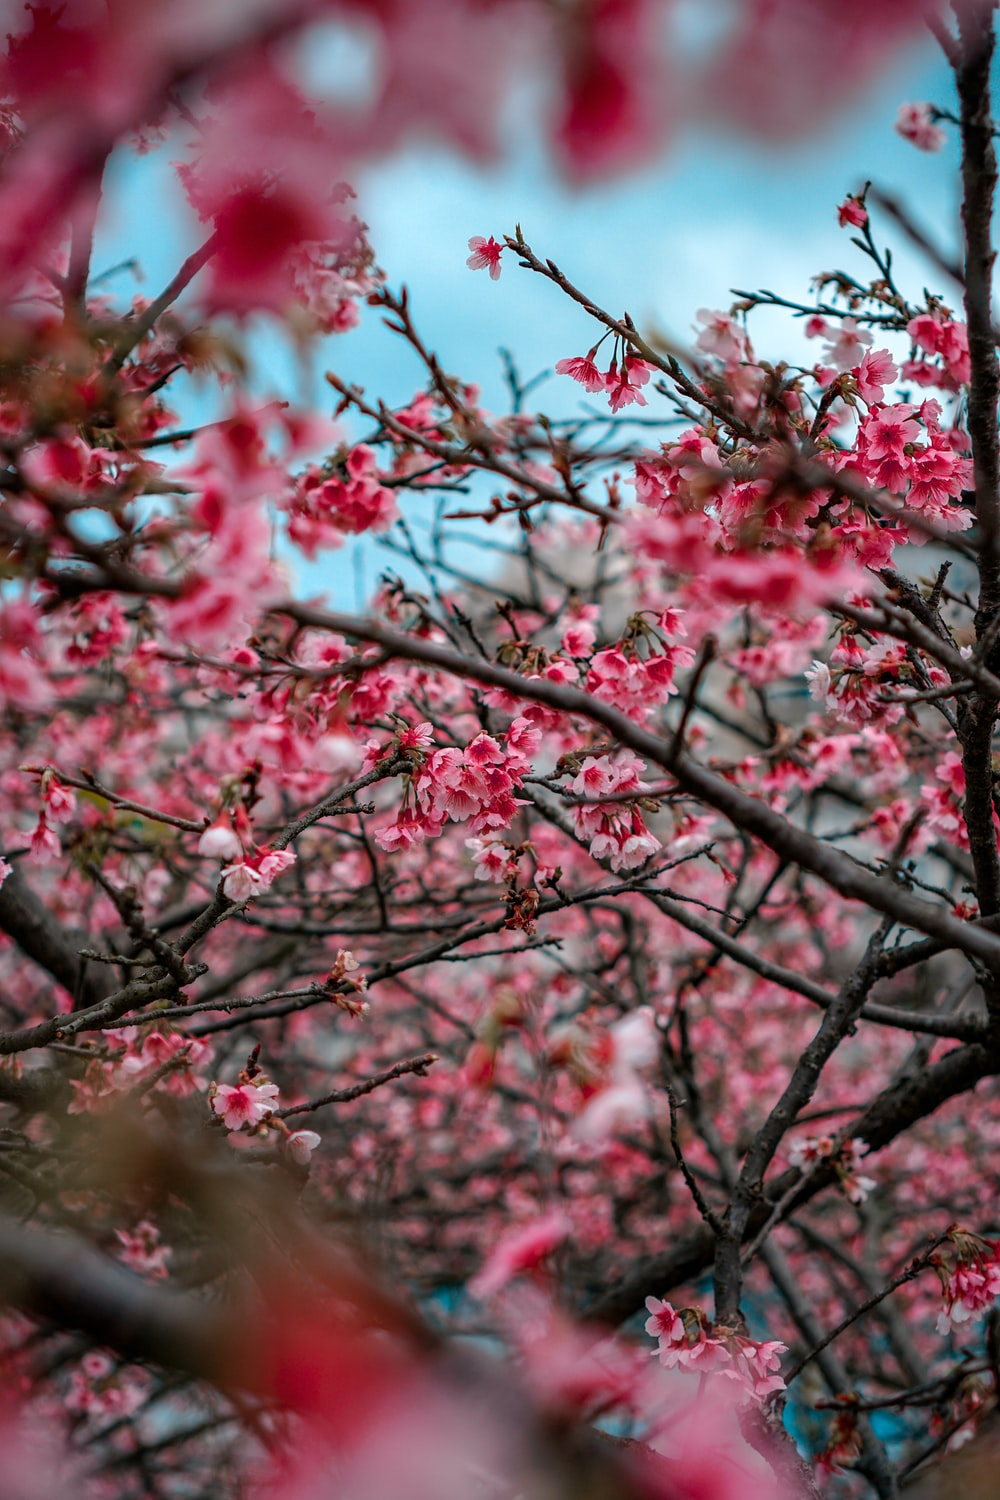 pink cherry blossom tree in close up photography